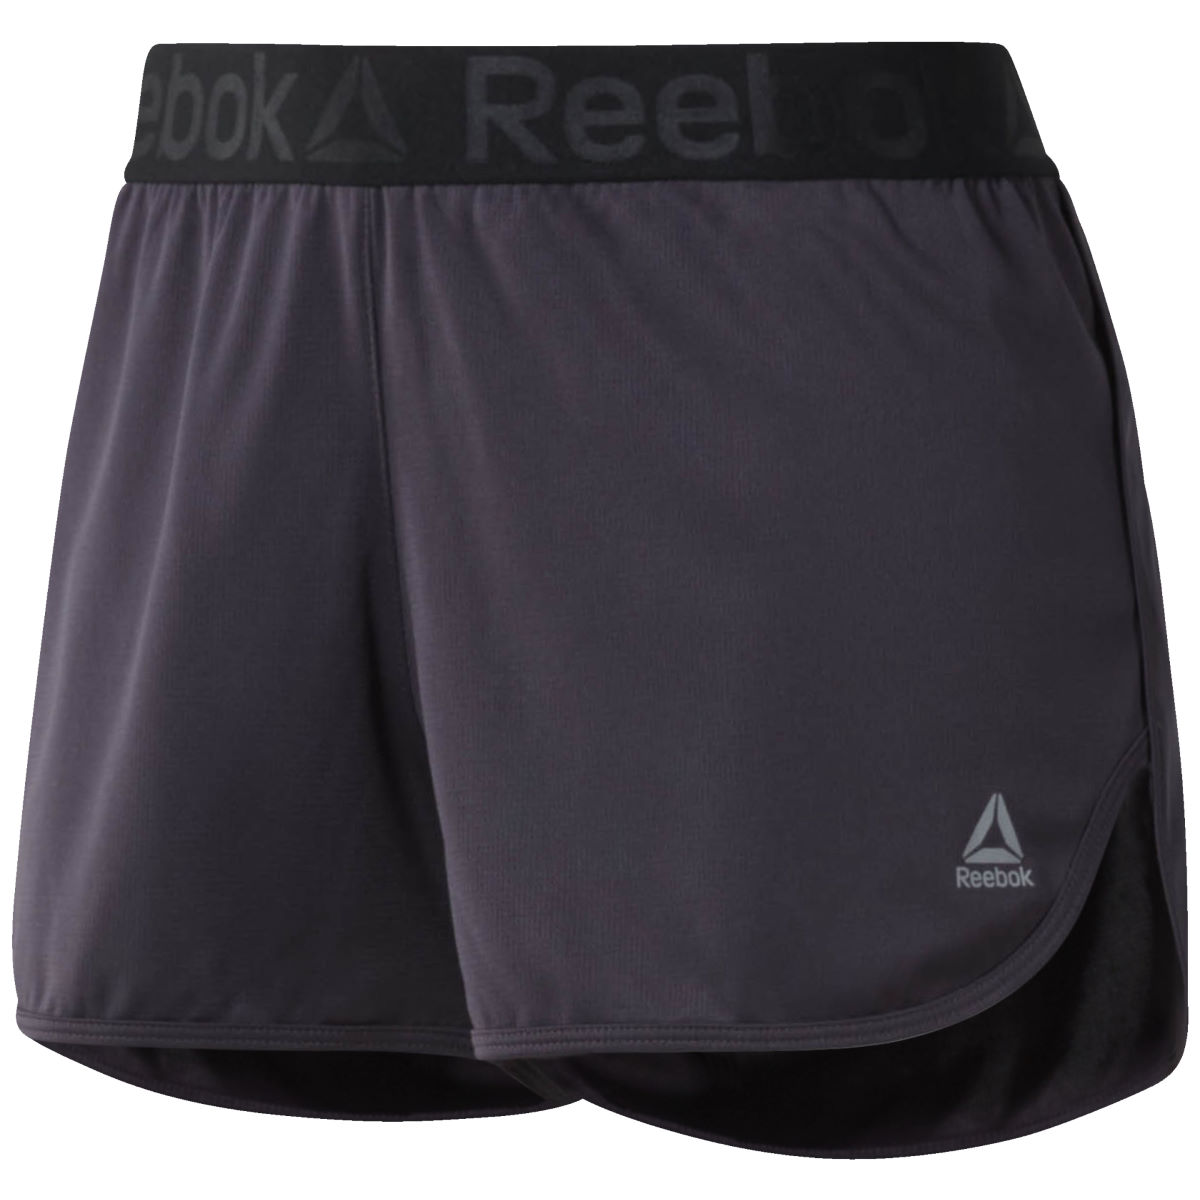 Short Femme Reebok Workout Ready - XS Smoky Volcano